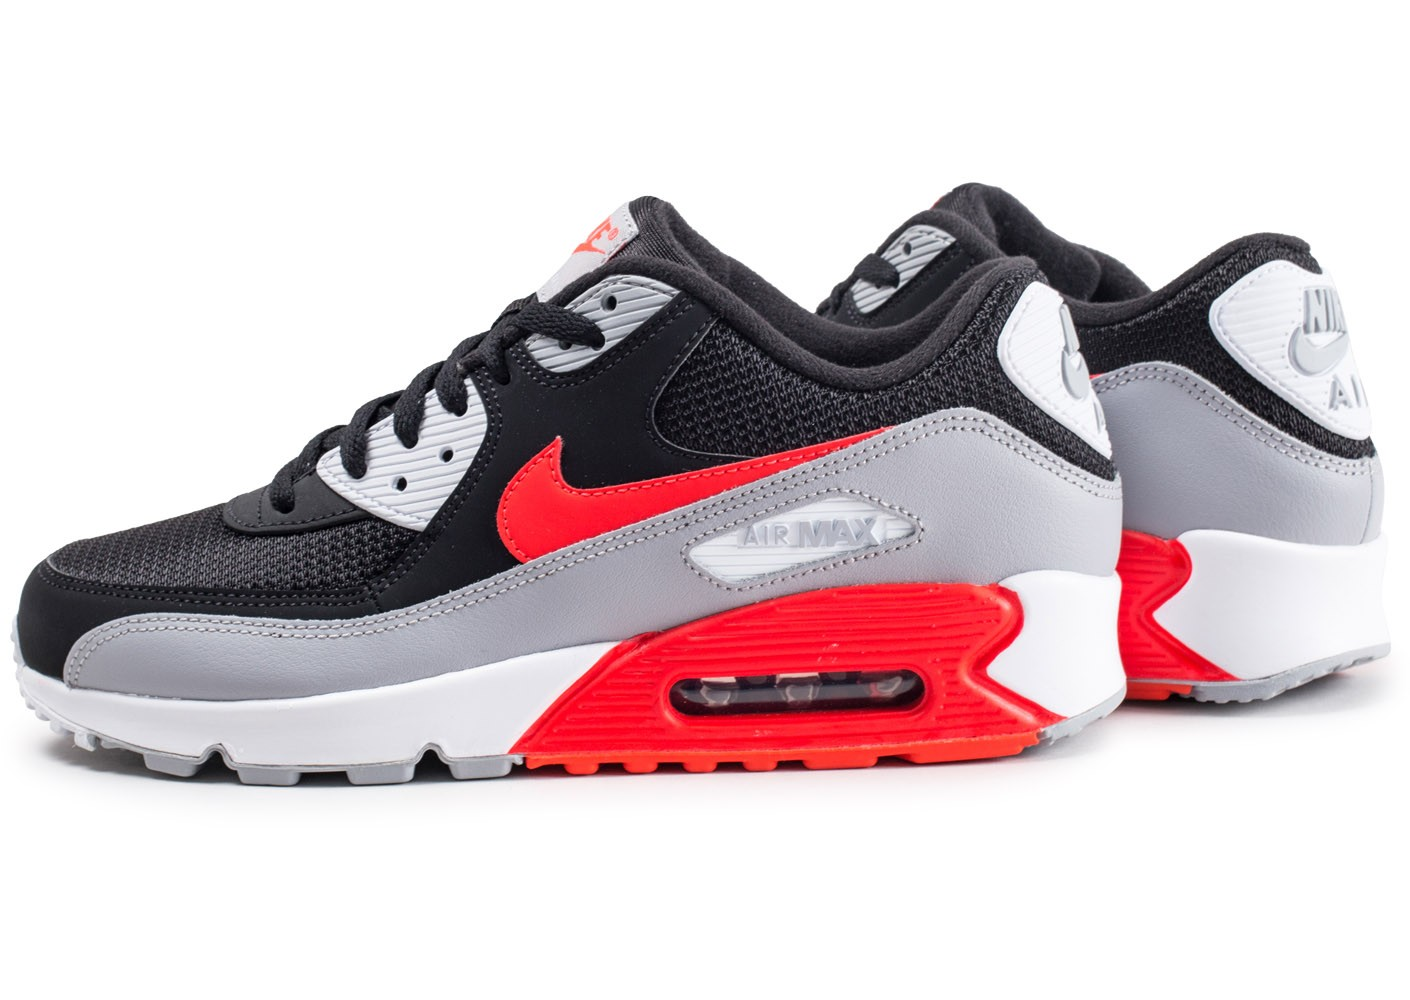 Nike Air Max Femme Original Sportswear Chaussures Air Max 90